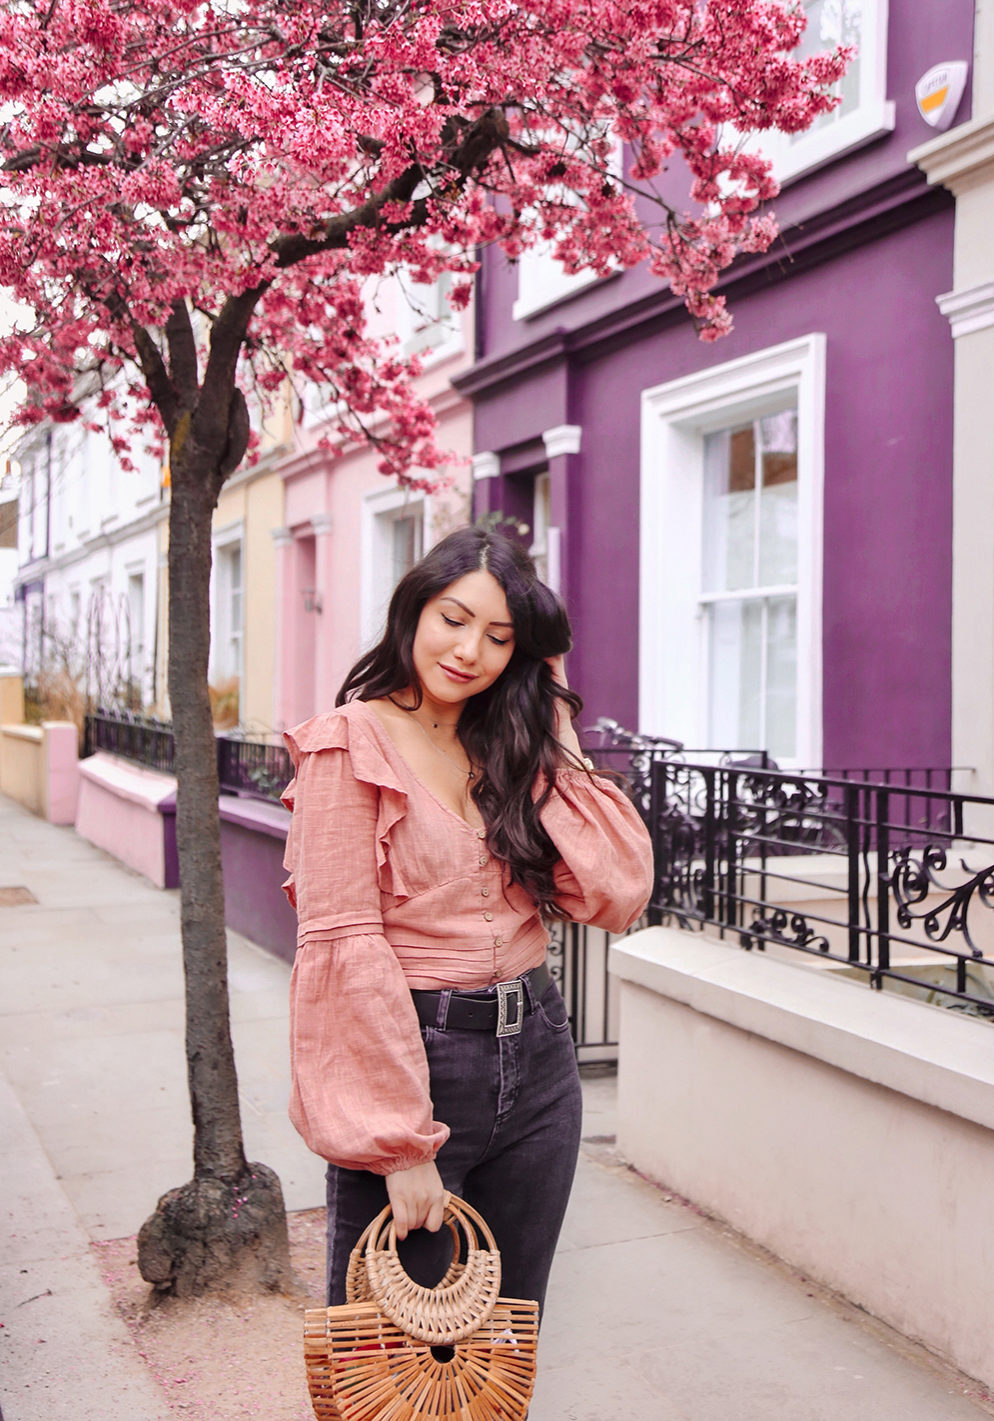 Is 2019 The Year Of Instagram Influencer Fatigue Anoushka Probyn